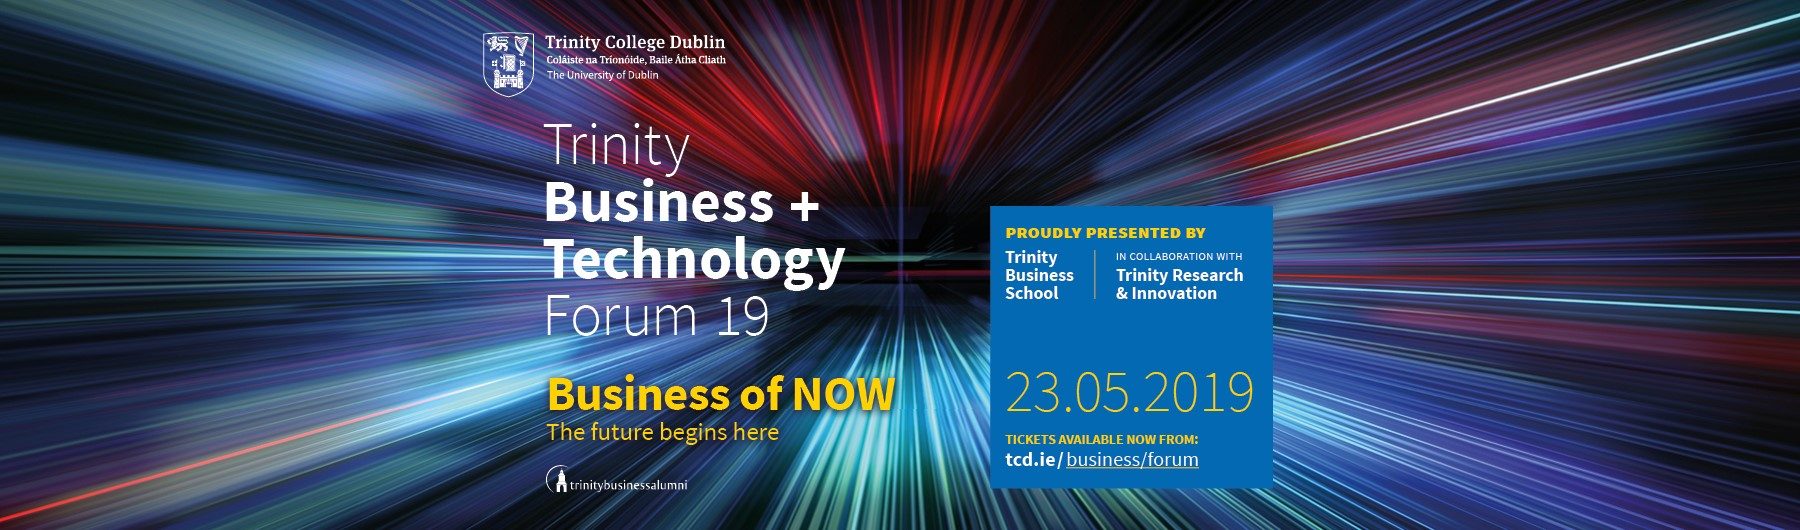 Trinity Business + Technology Forum 19